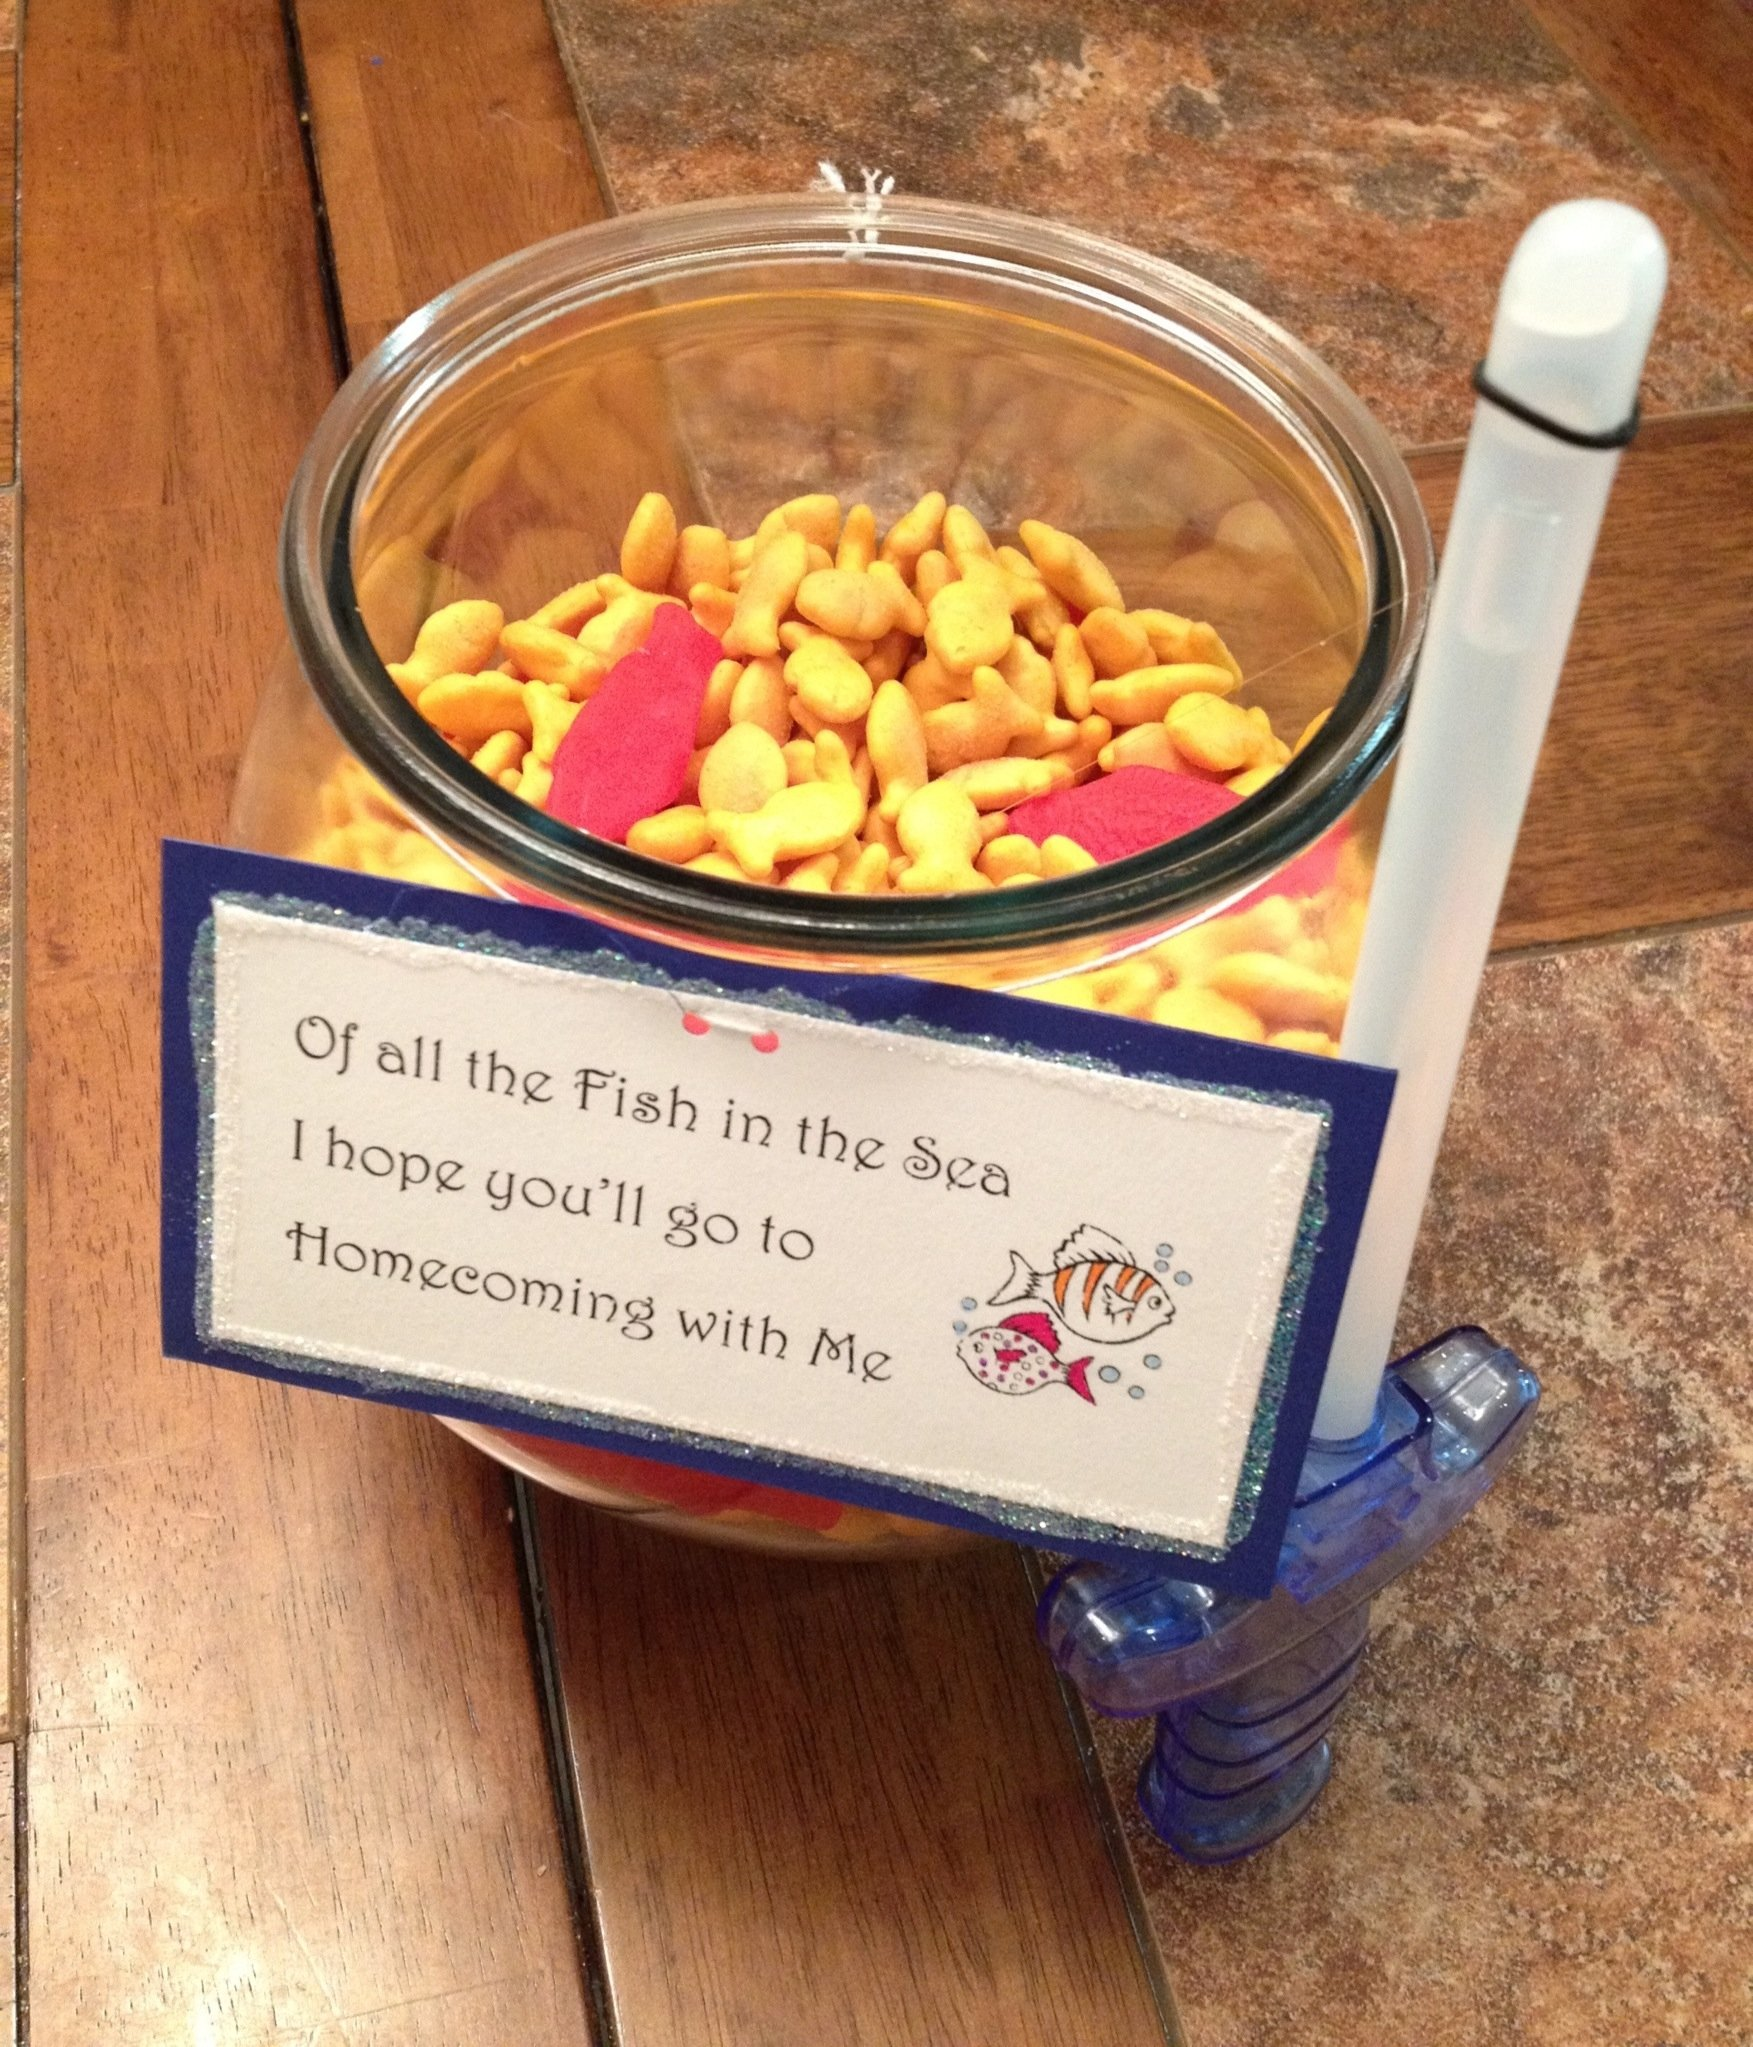 10 Stylish Asking A Girl To Homecoming Ideas another idea for asking a girl to homecoming prom the fishbowl is 4 2020